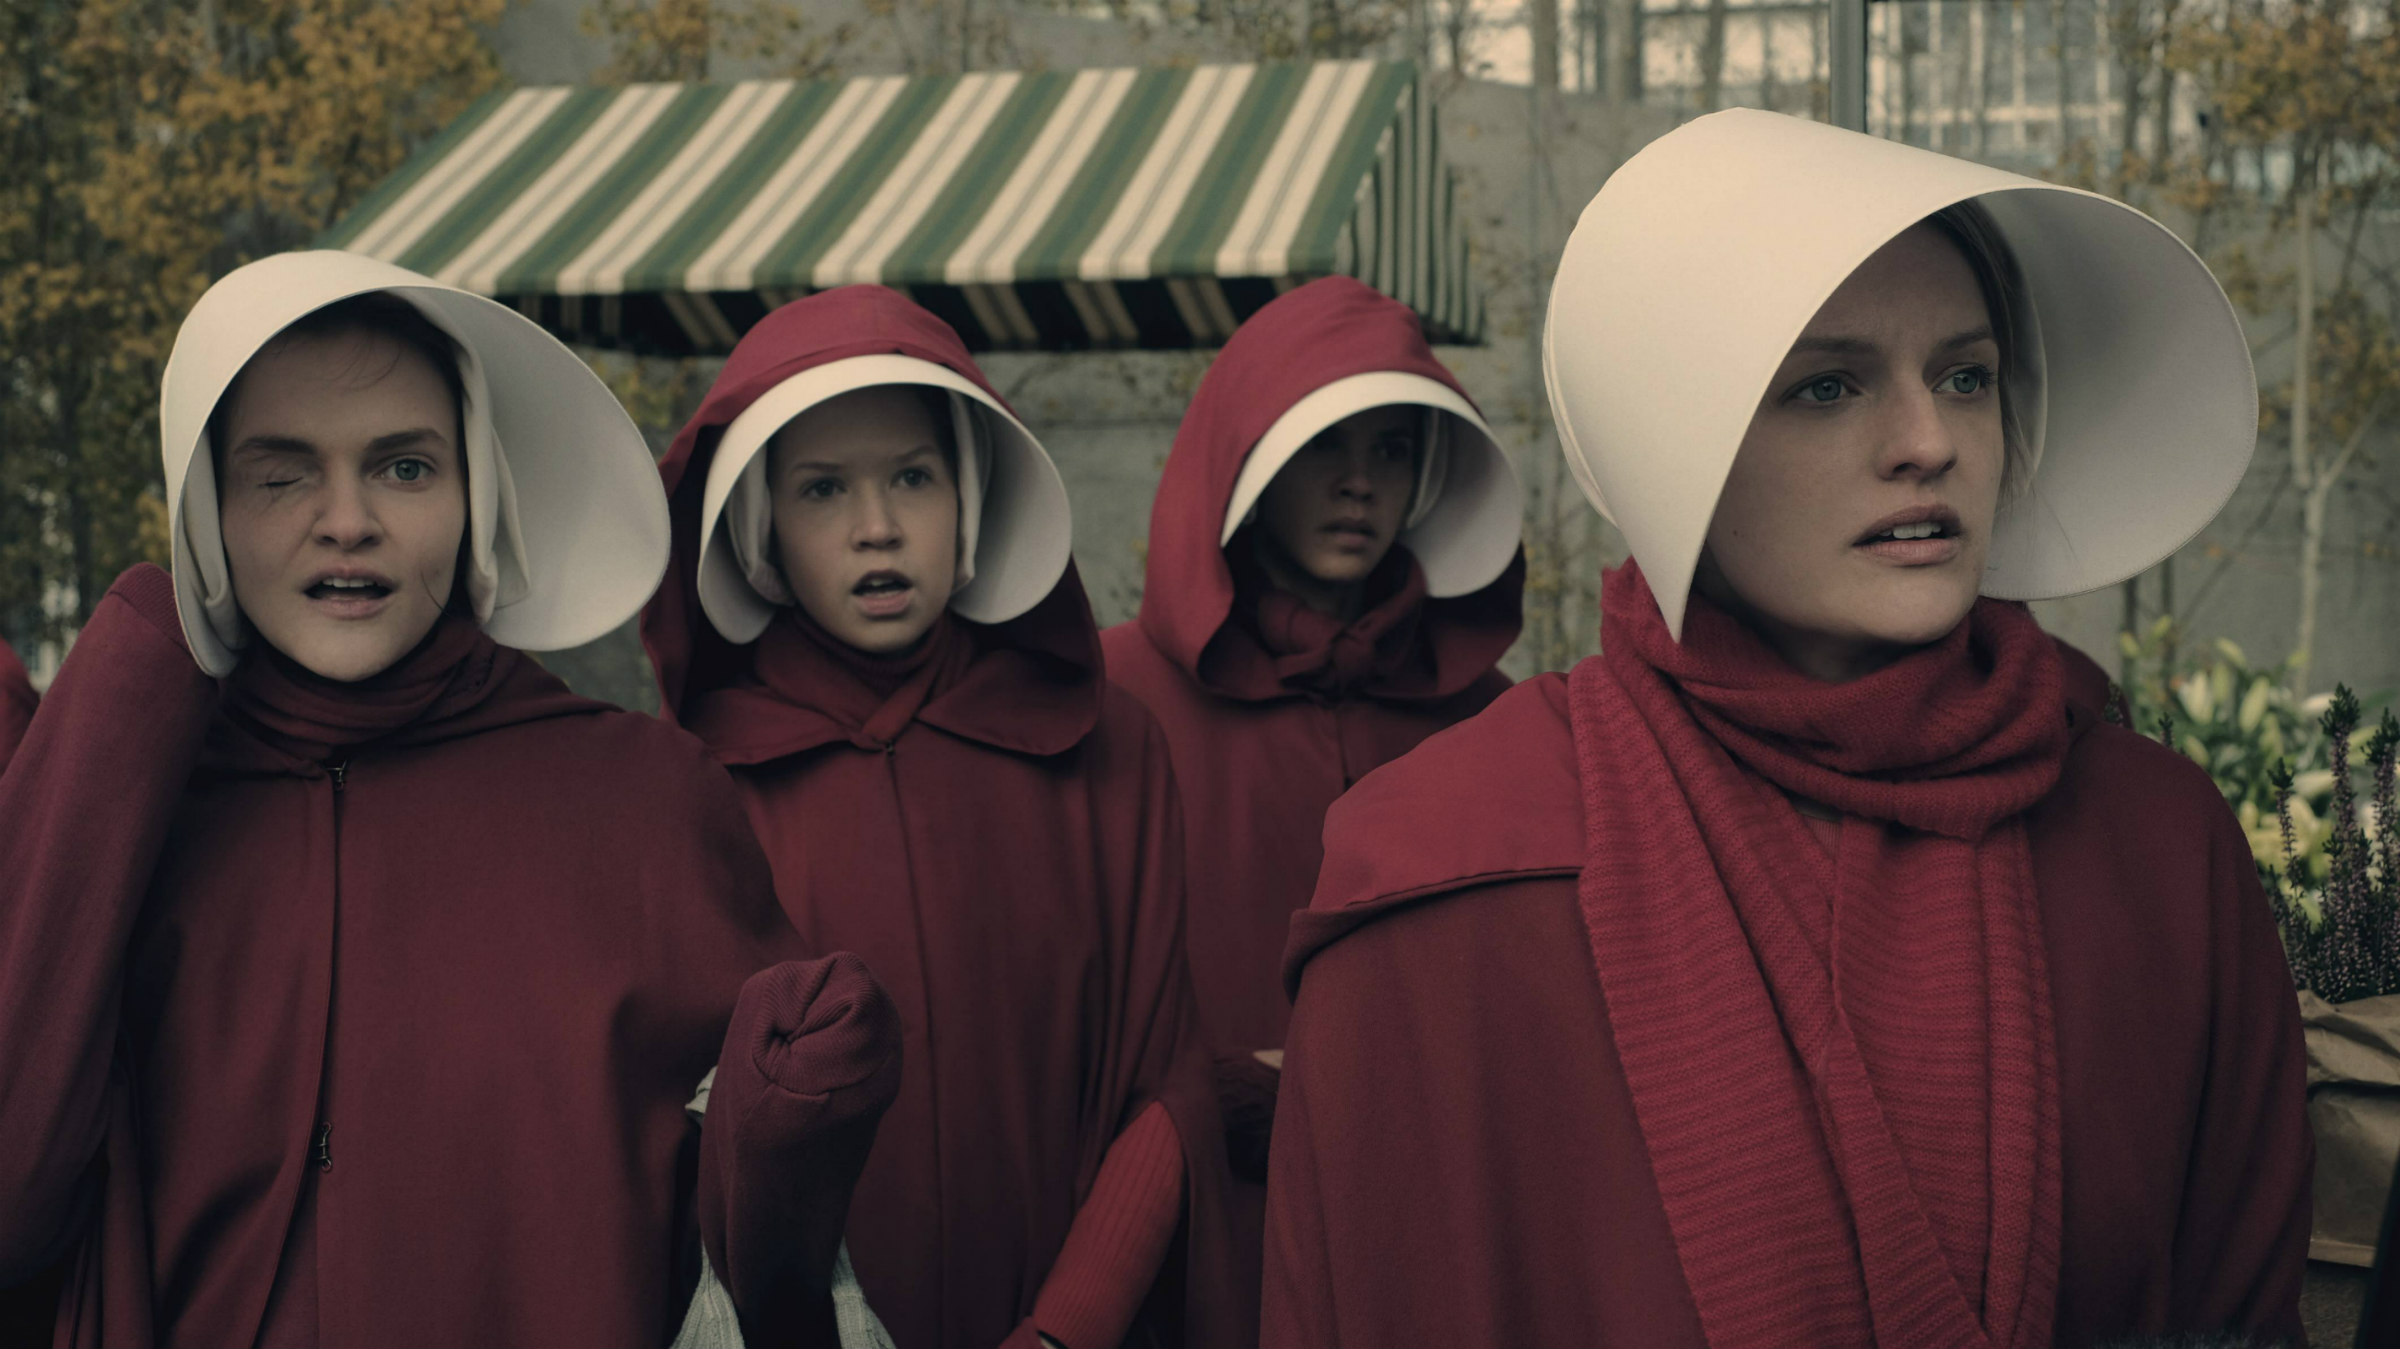 four white women wear red robes with white hats in The Handmaid's Tale